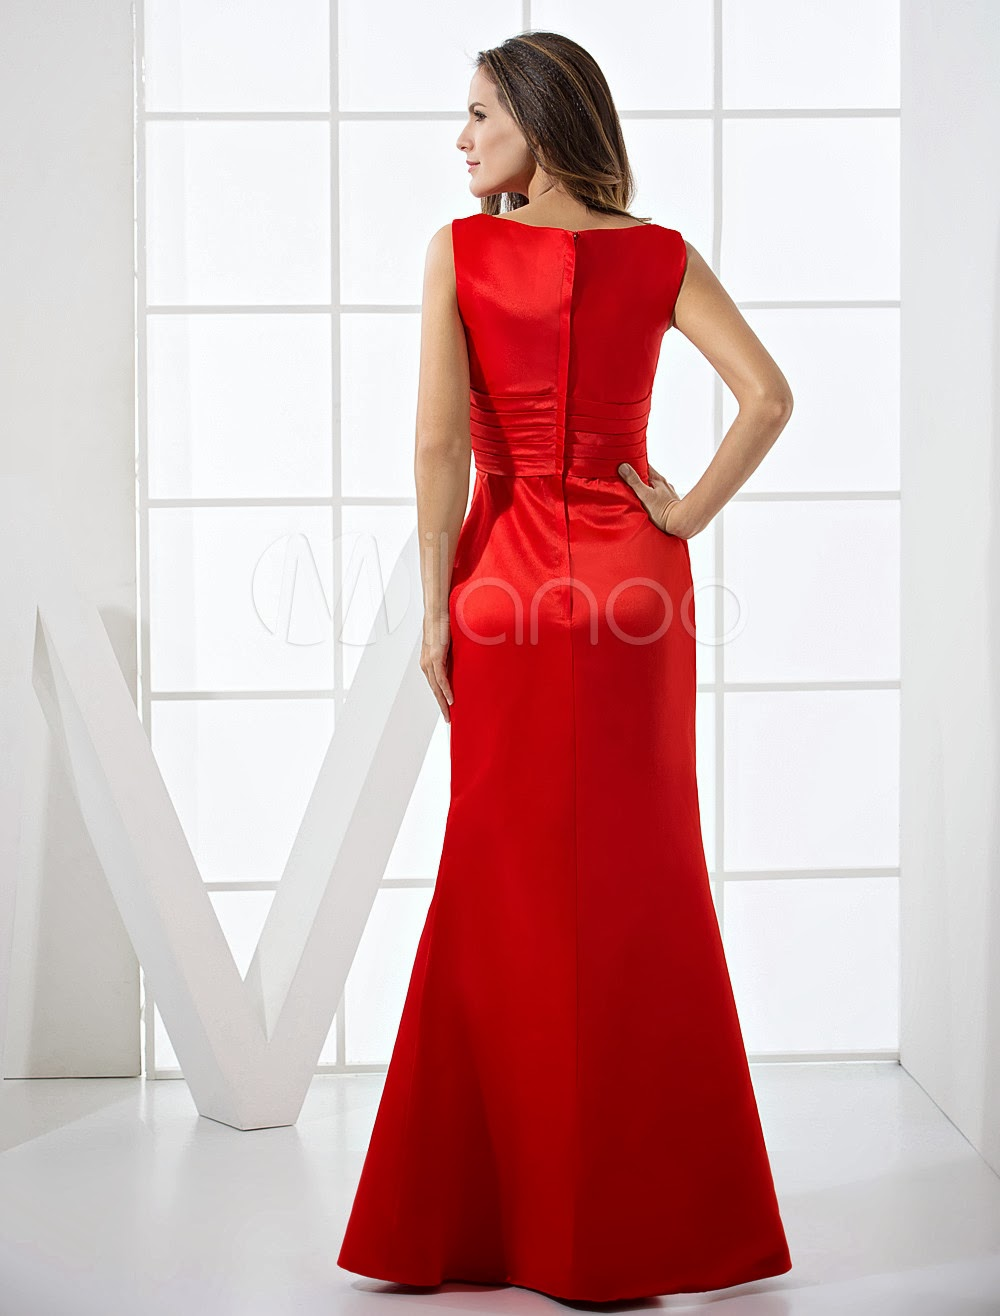 China Wholesale Dresses - Red Wrapped Waist Floor Length A-line Satin Evening Dresses